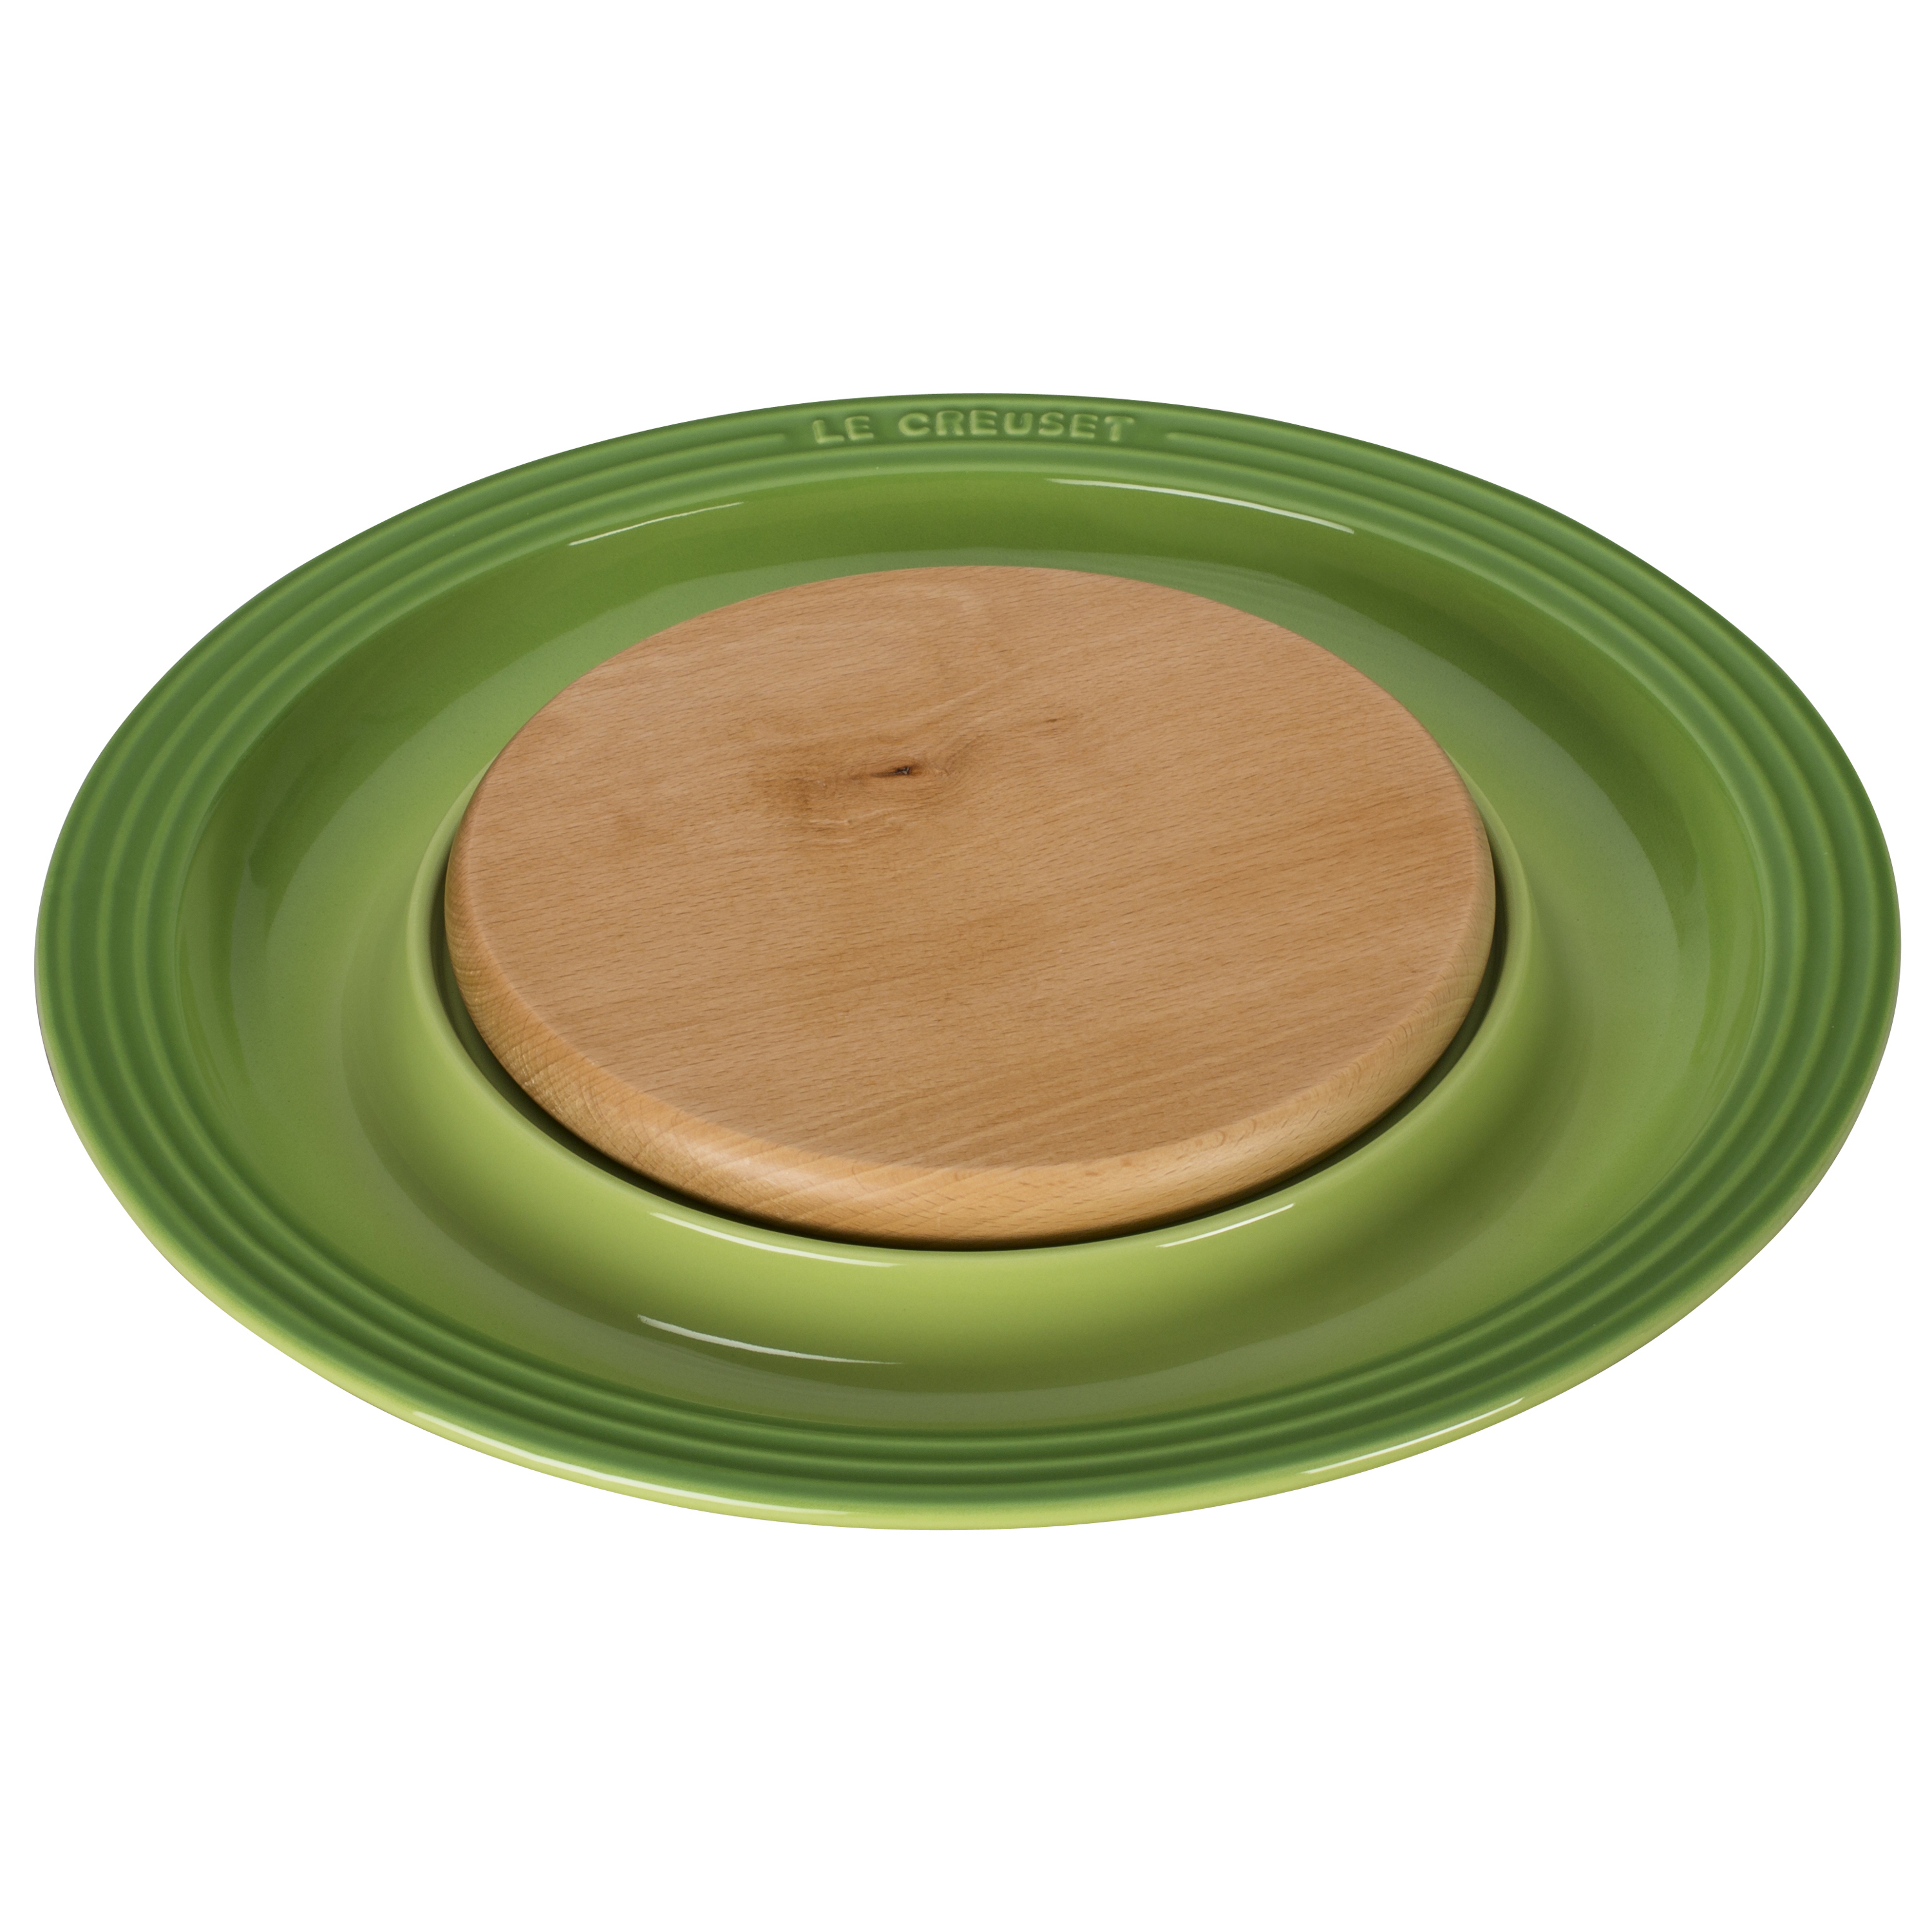 Le Creuset Palm Stoneware Cheese Server with Beechwood Cutting Board